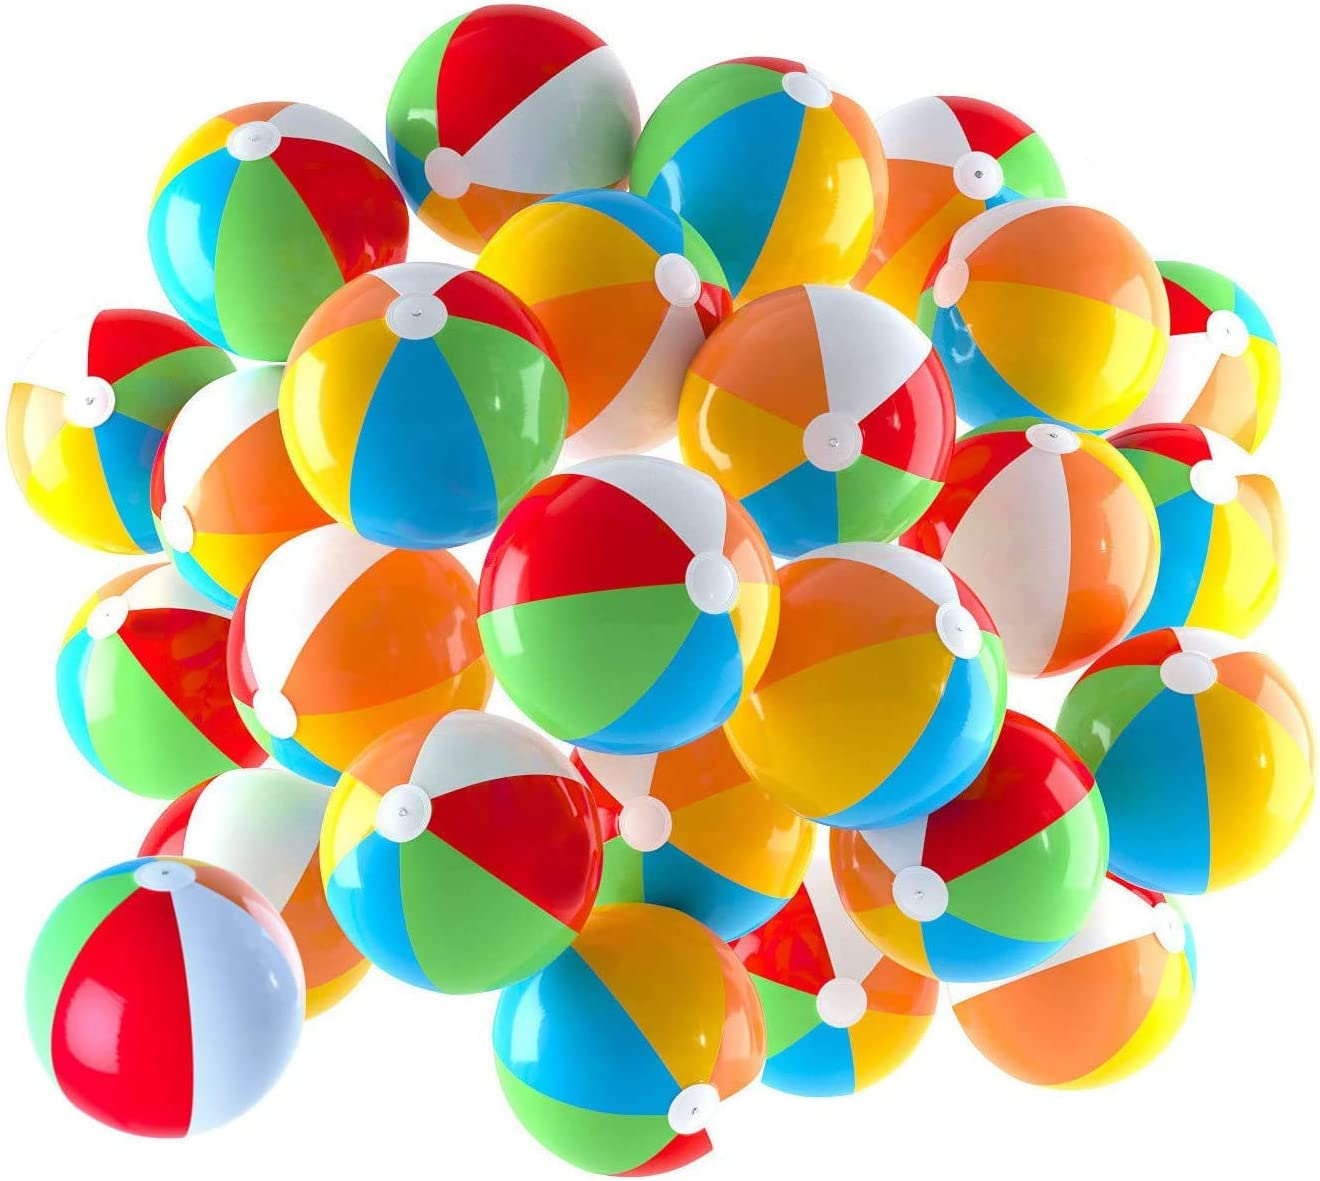 Inflatable Beach Balls 5 inch for The Pool, Beach, Summer Parties, Gifts and Decorations (25 Balls): Sports & Outdoors